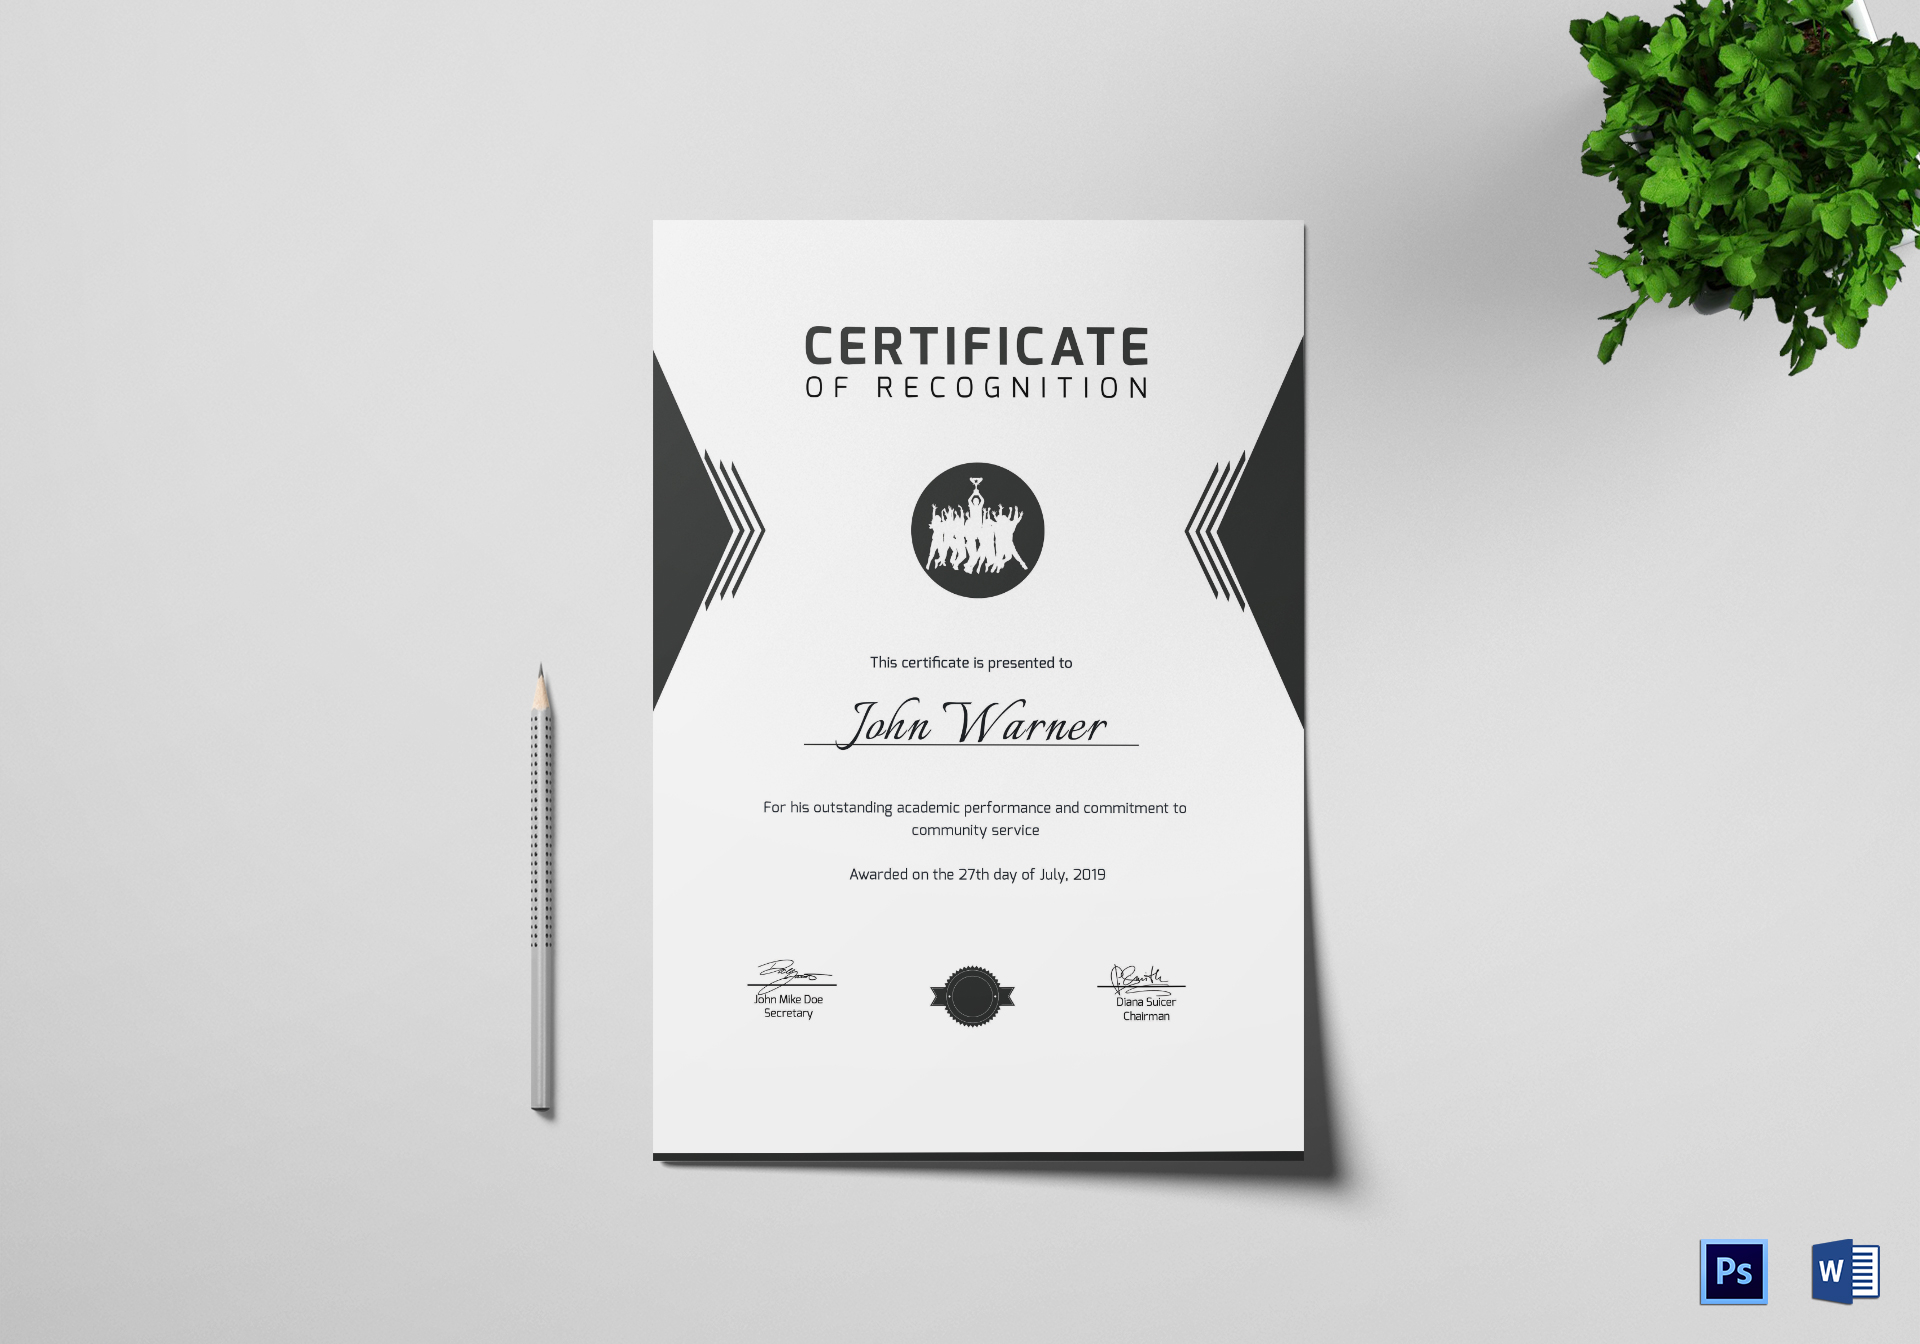 Prize Winning Certificate Design Template In Psd Word